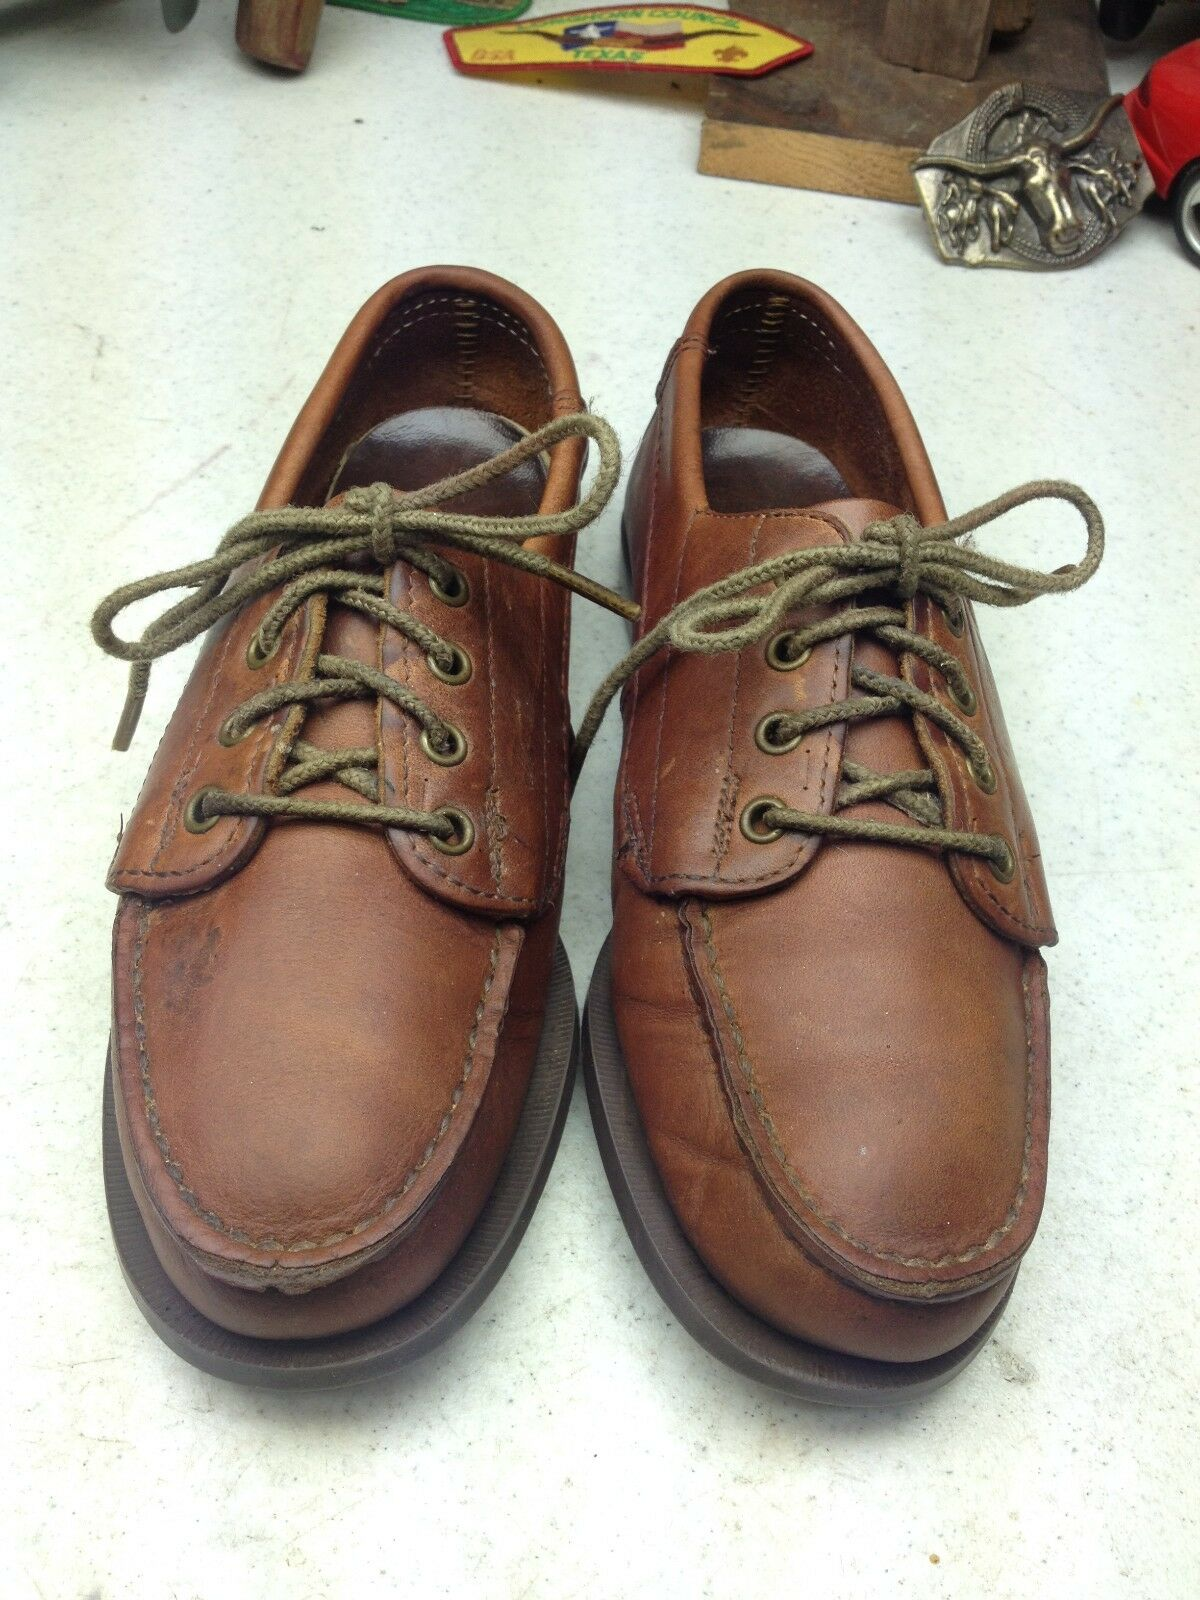 EASTLAND MADE IN USA ACADIA DISTRESSED BROWN LEATHER LACE UP WALKING SHOES 6.5 M